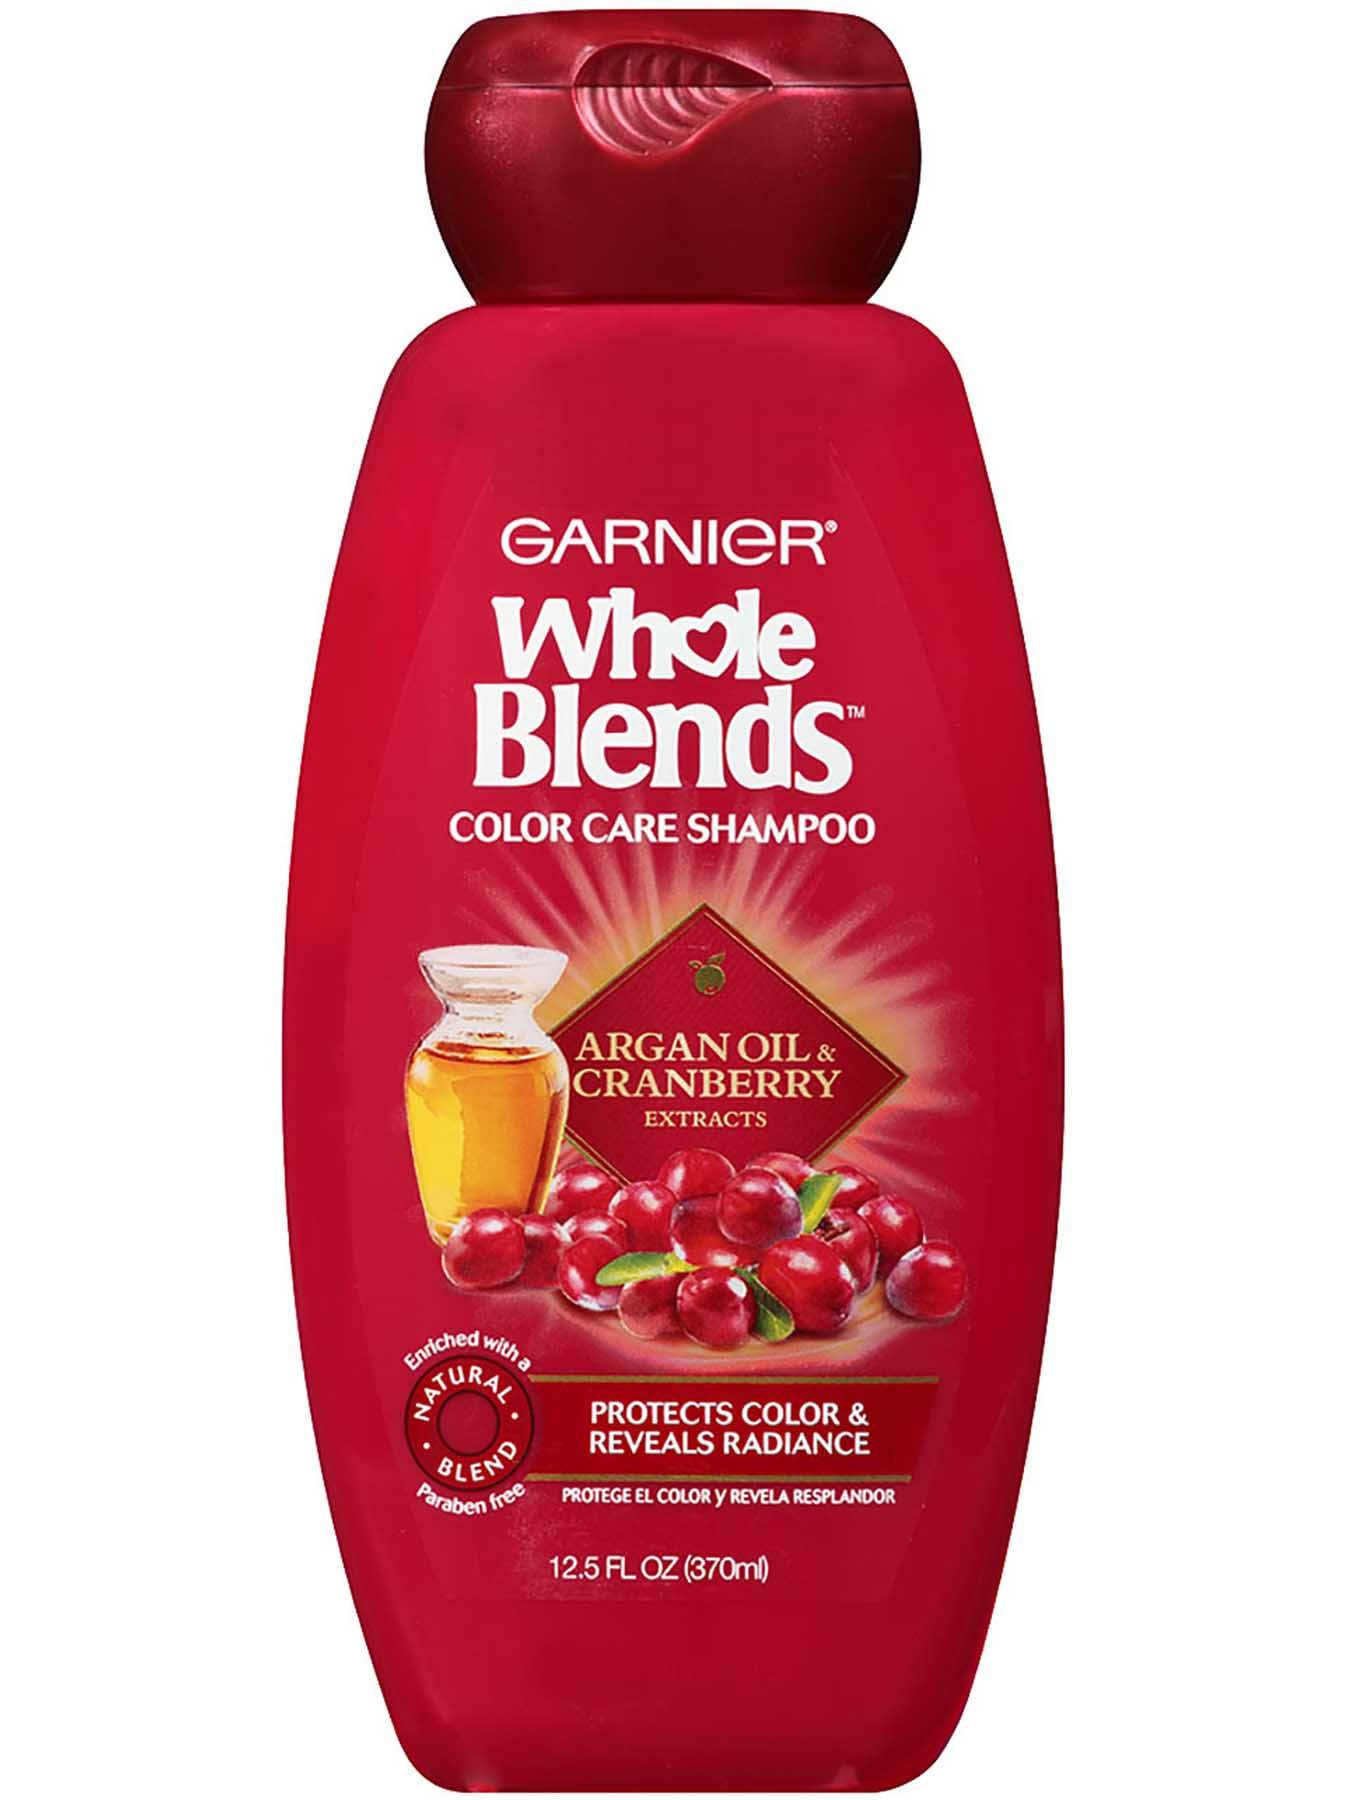 Garnier Whole Blends Color Care Shampoo Argan Oil Cranberry Extracts Front Of Bottle